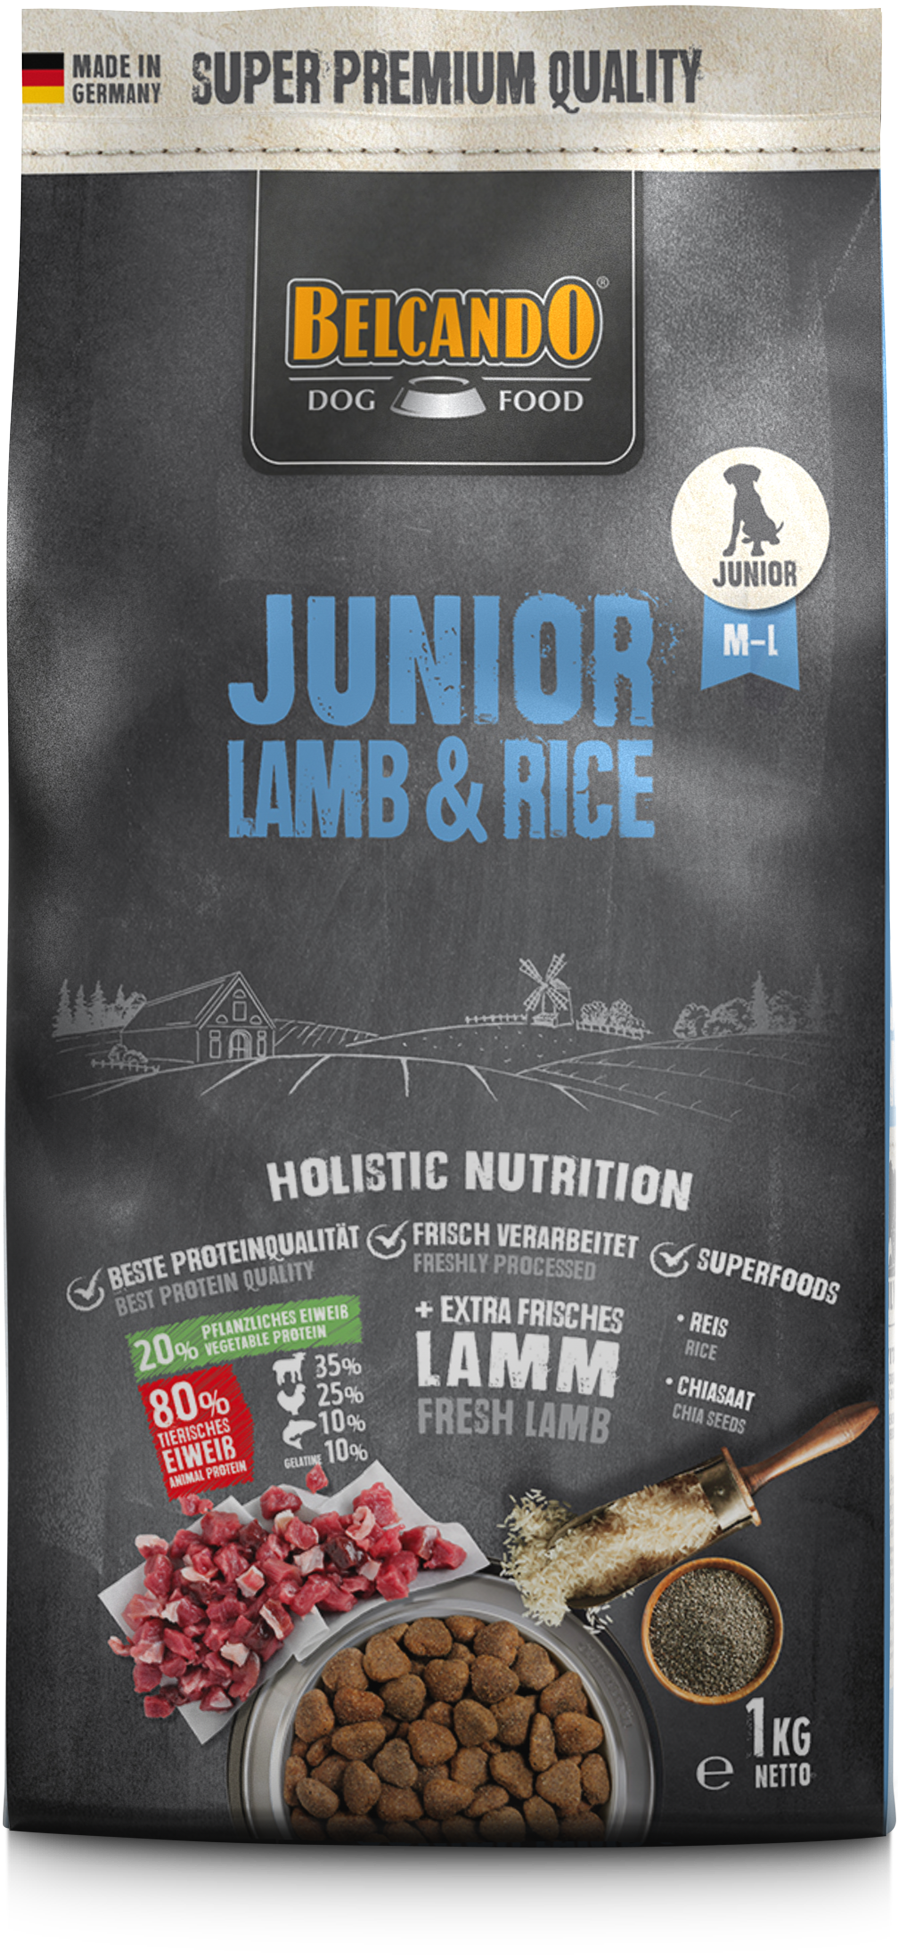 Belcando-Junior-Lamb-Rice-1kg-front